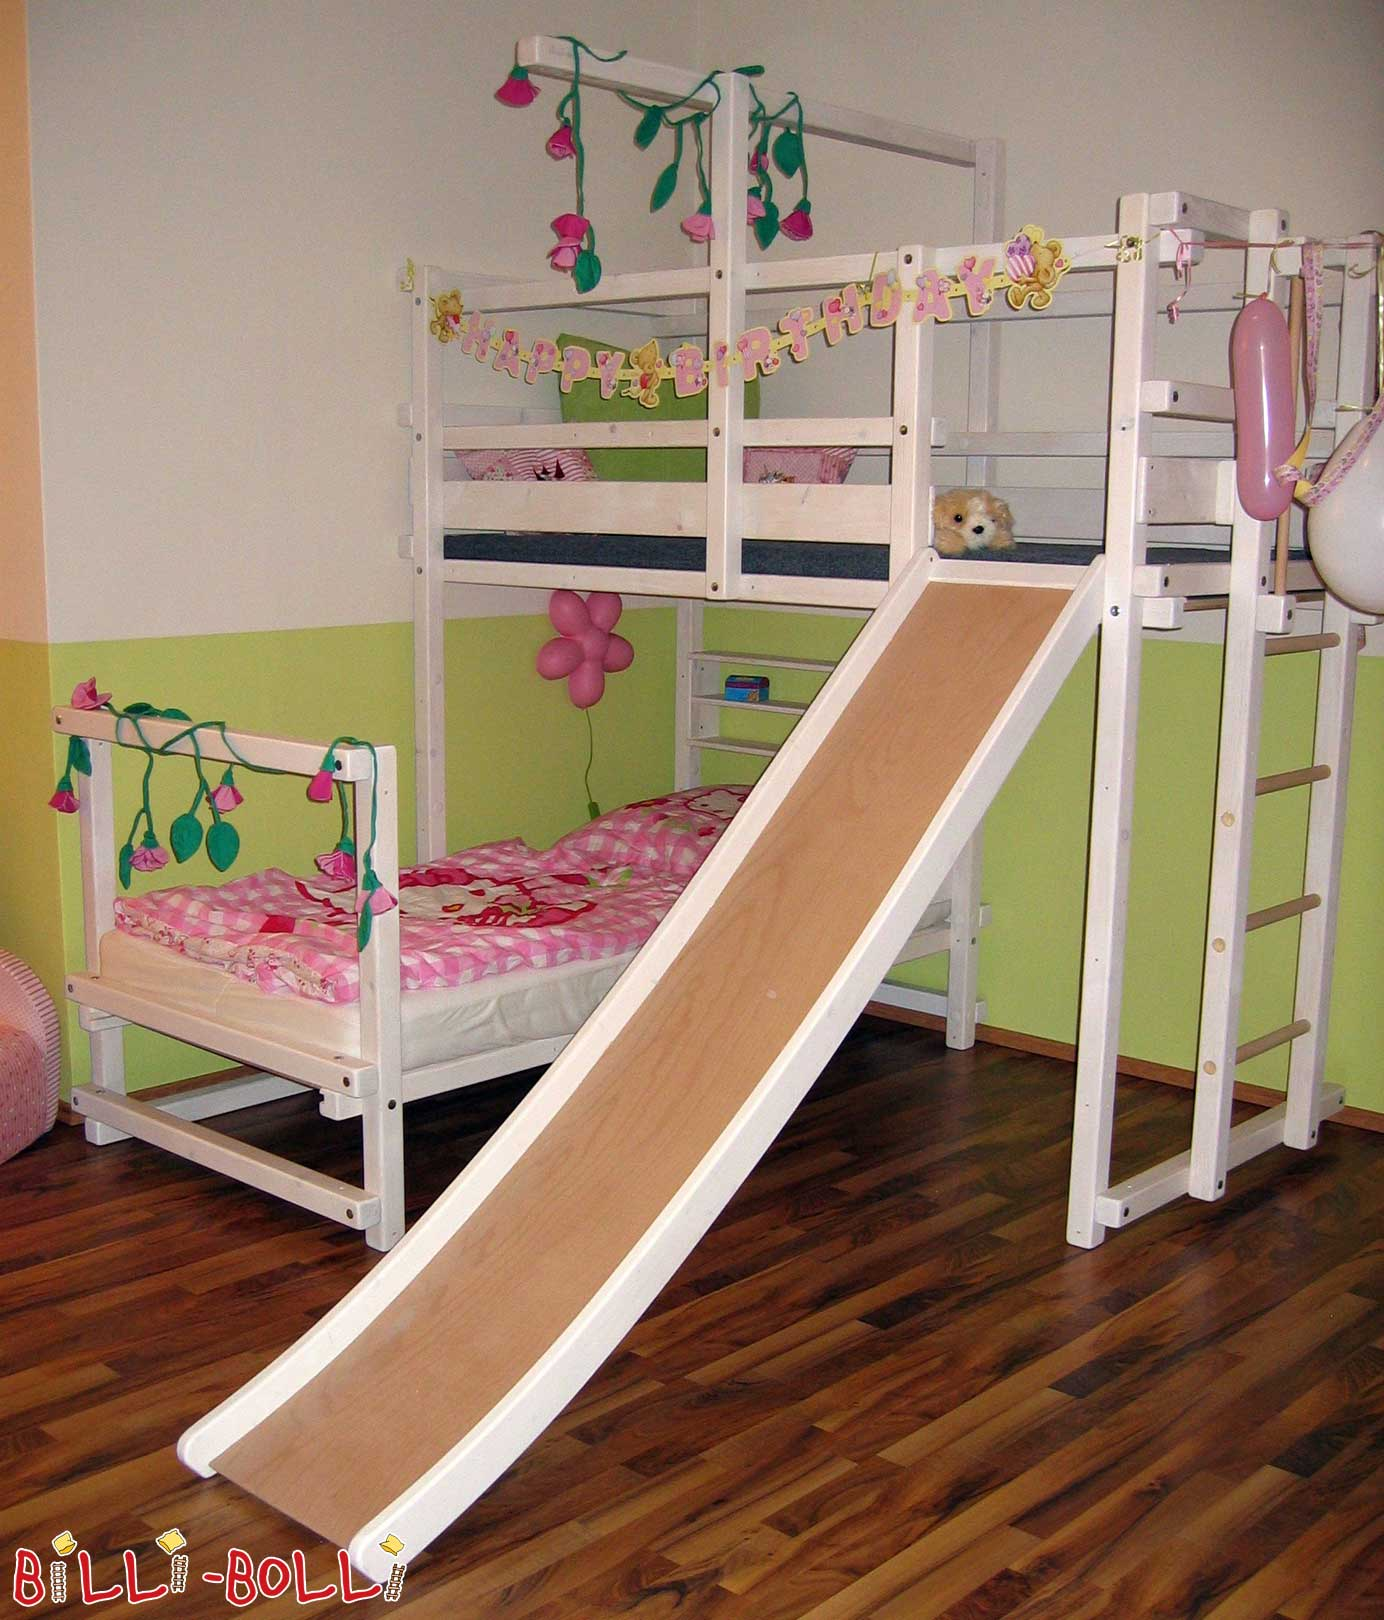 Bunk beds with slide and rope - More Photos With The Corner Bunk Bed